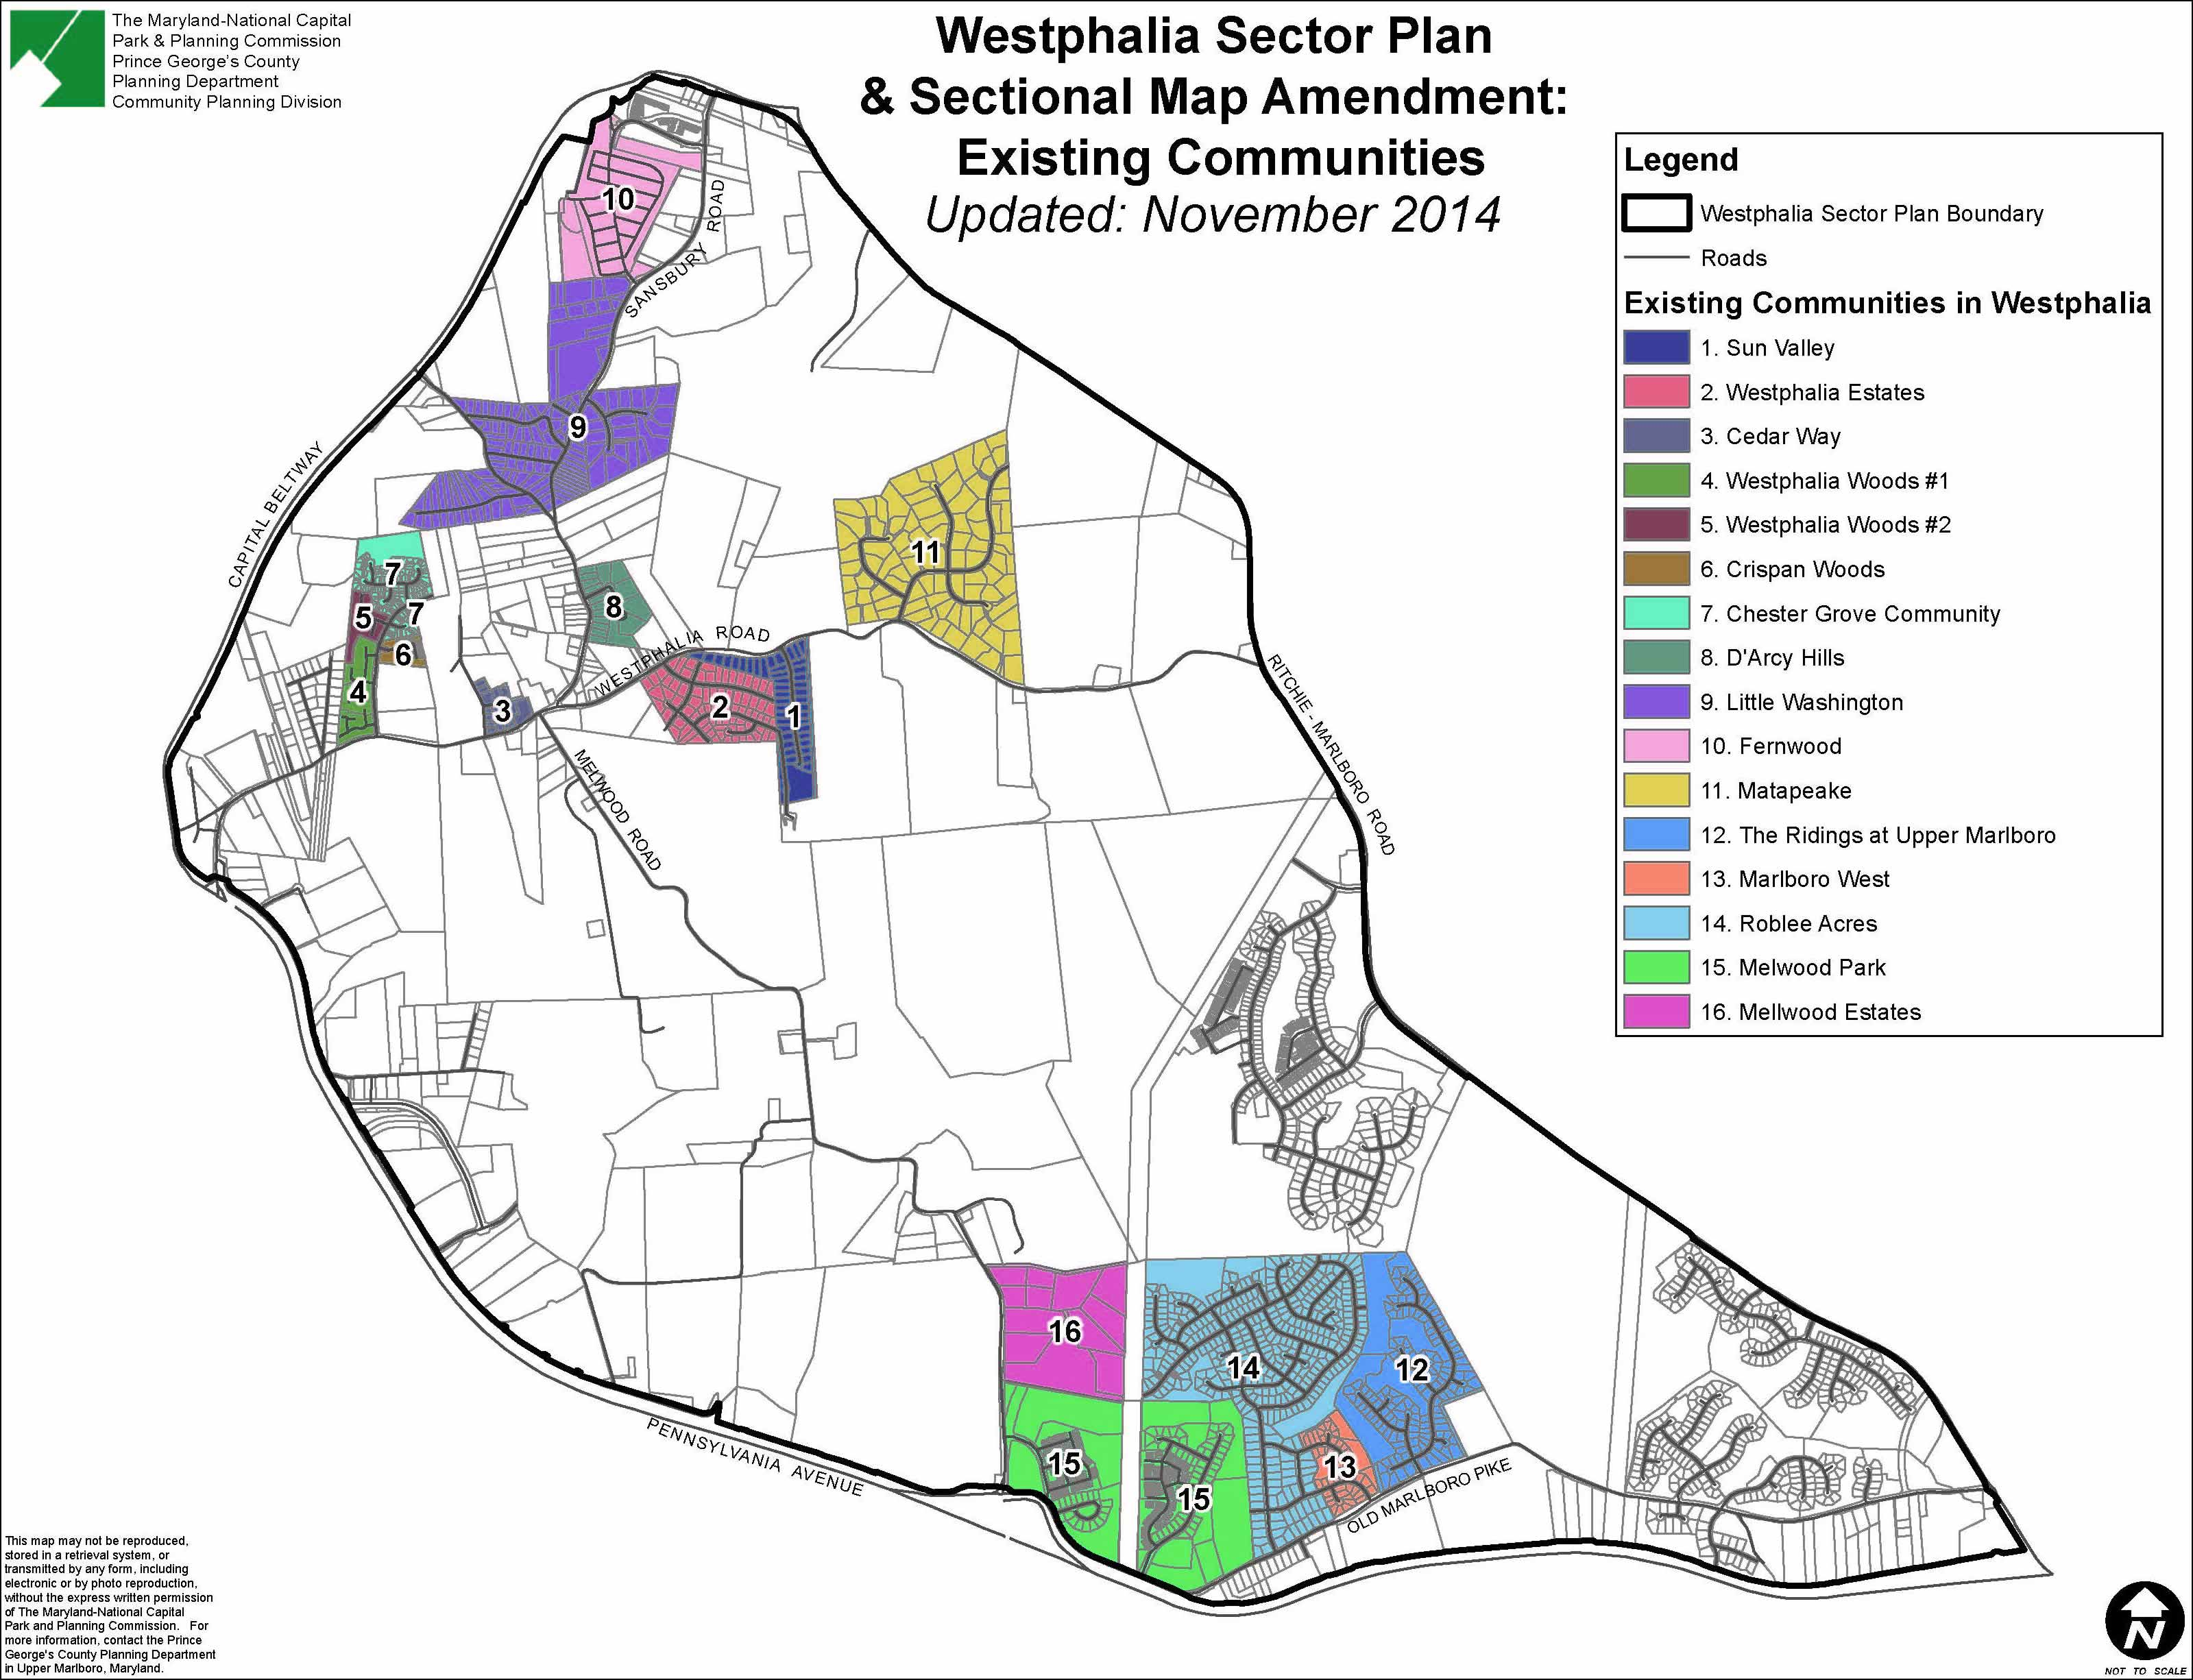 Map of Westphalia Existing Communities